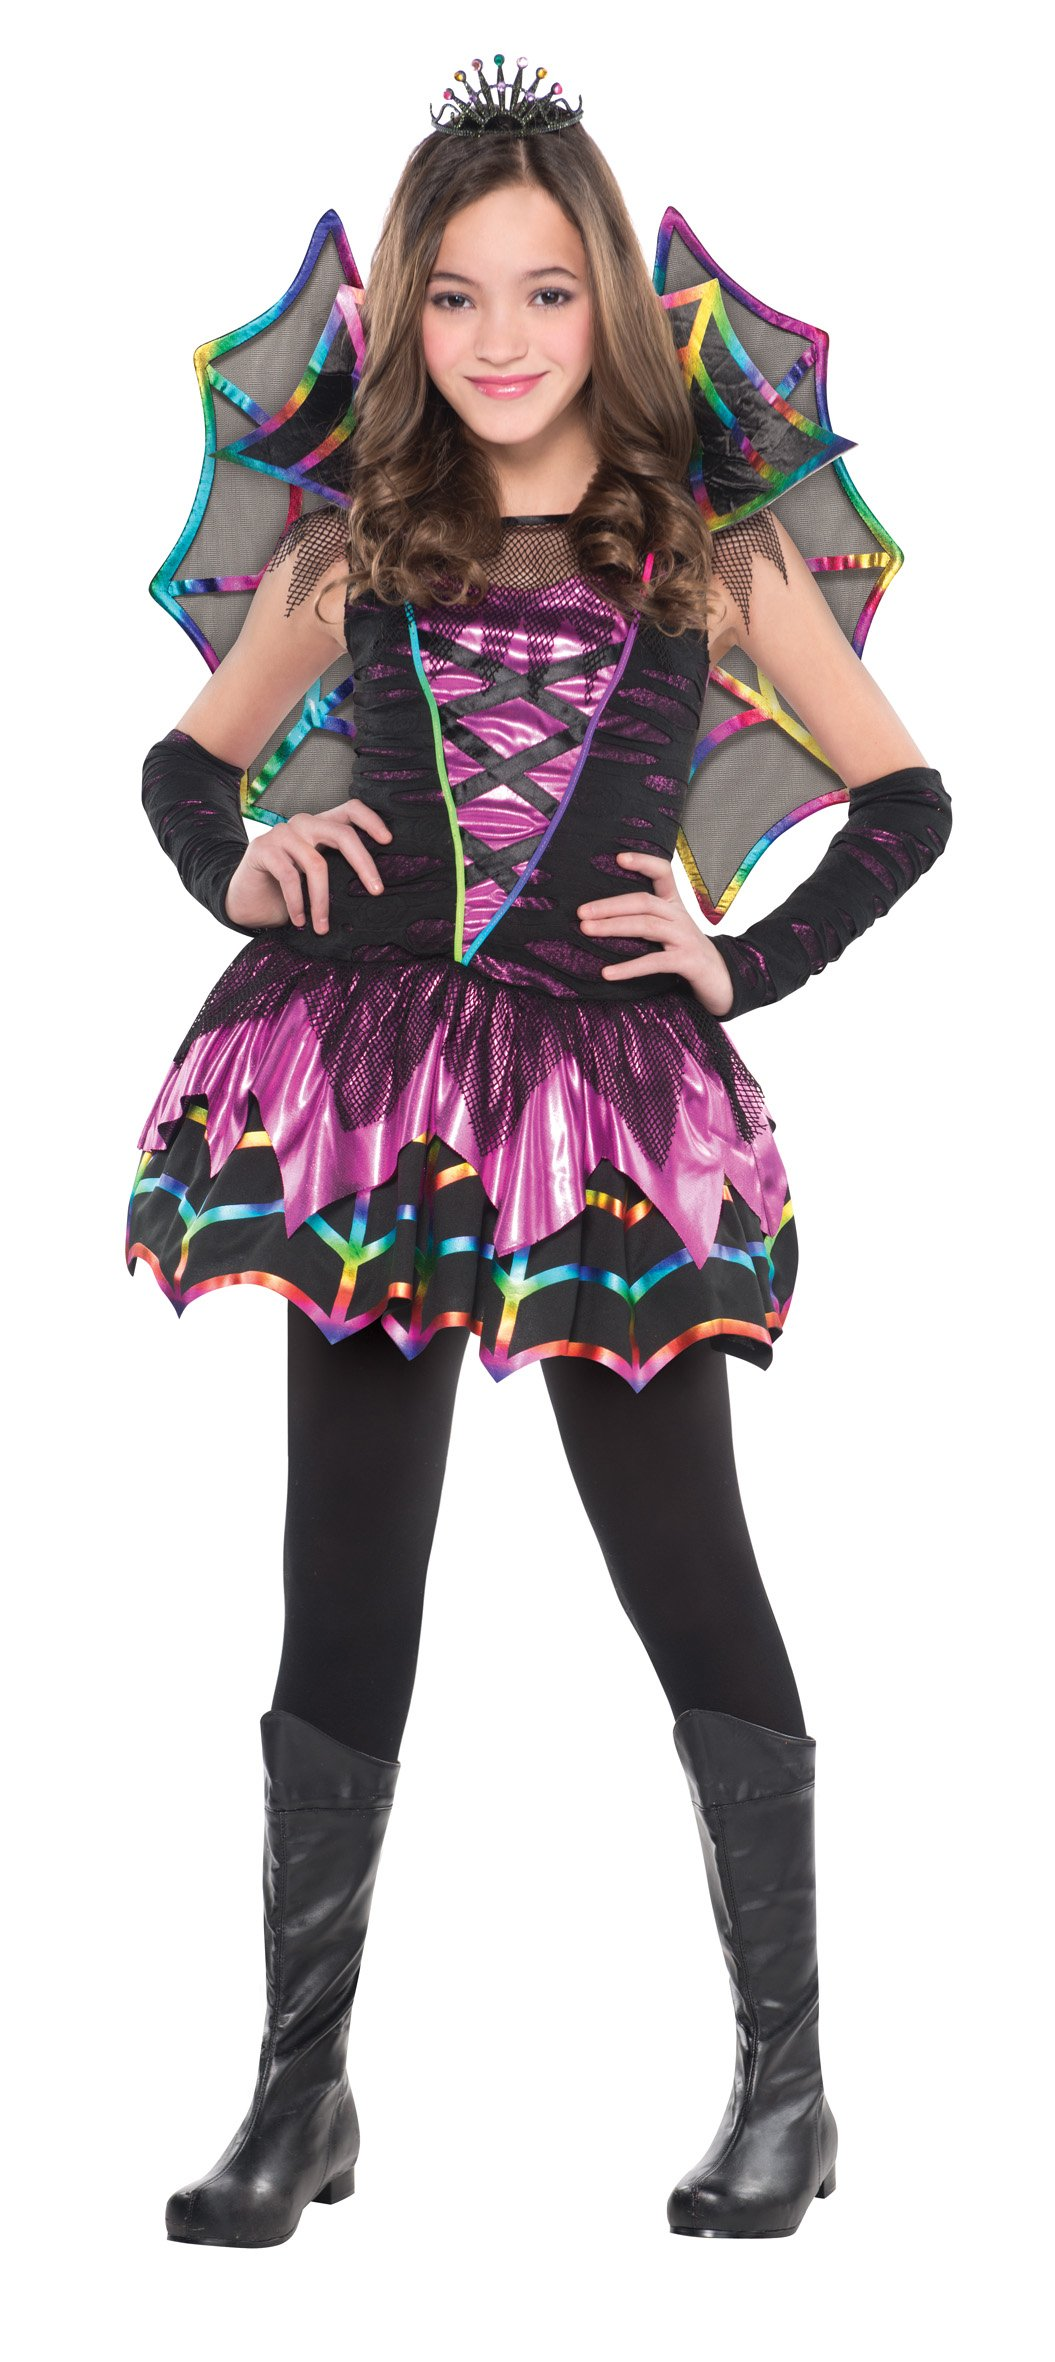 - 81bFVXksZjL - Christy's Girls Spider Fairy Costume (4-6 Years)